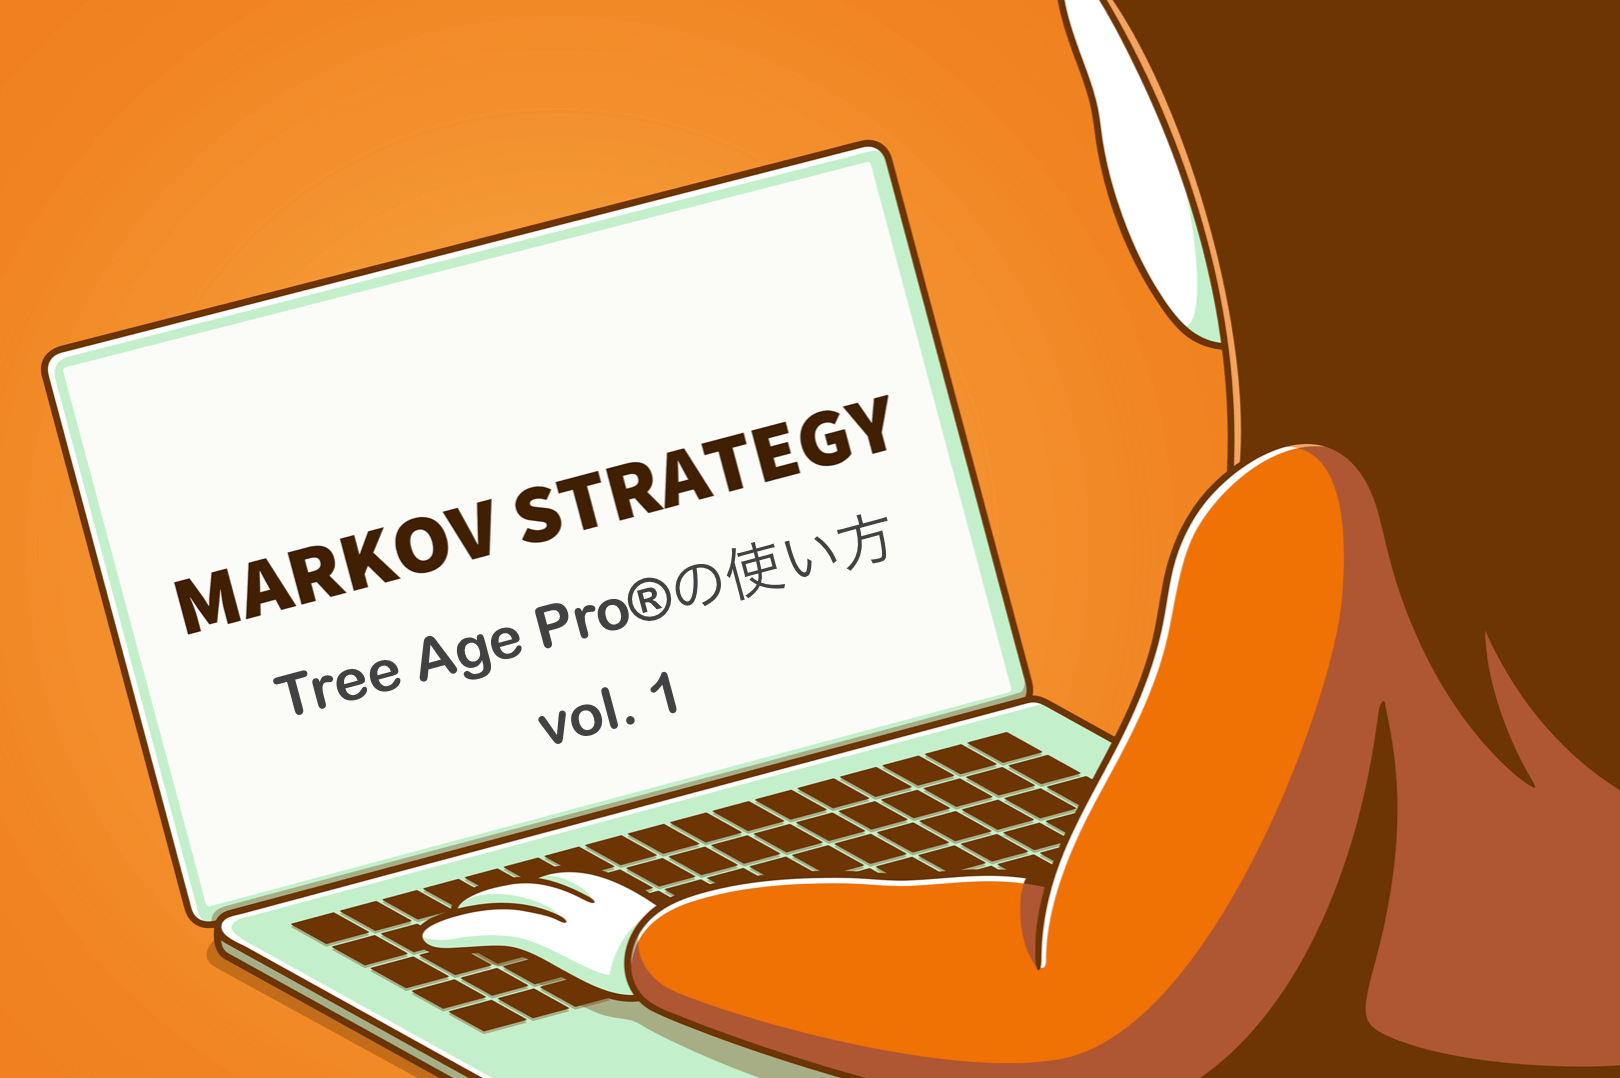 Markov Model Tree Age Pro 使い方